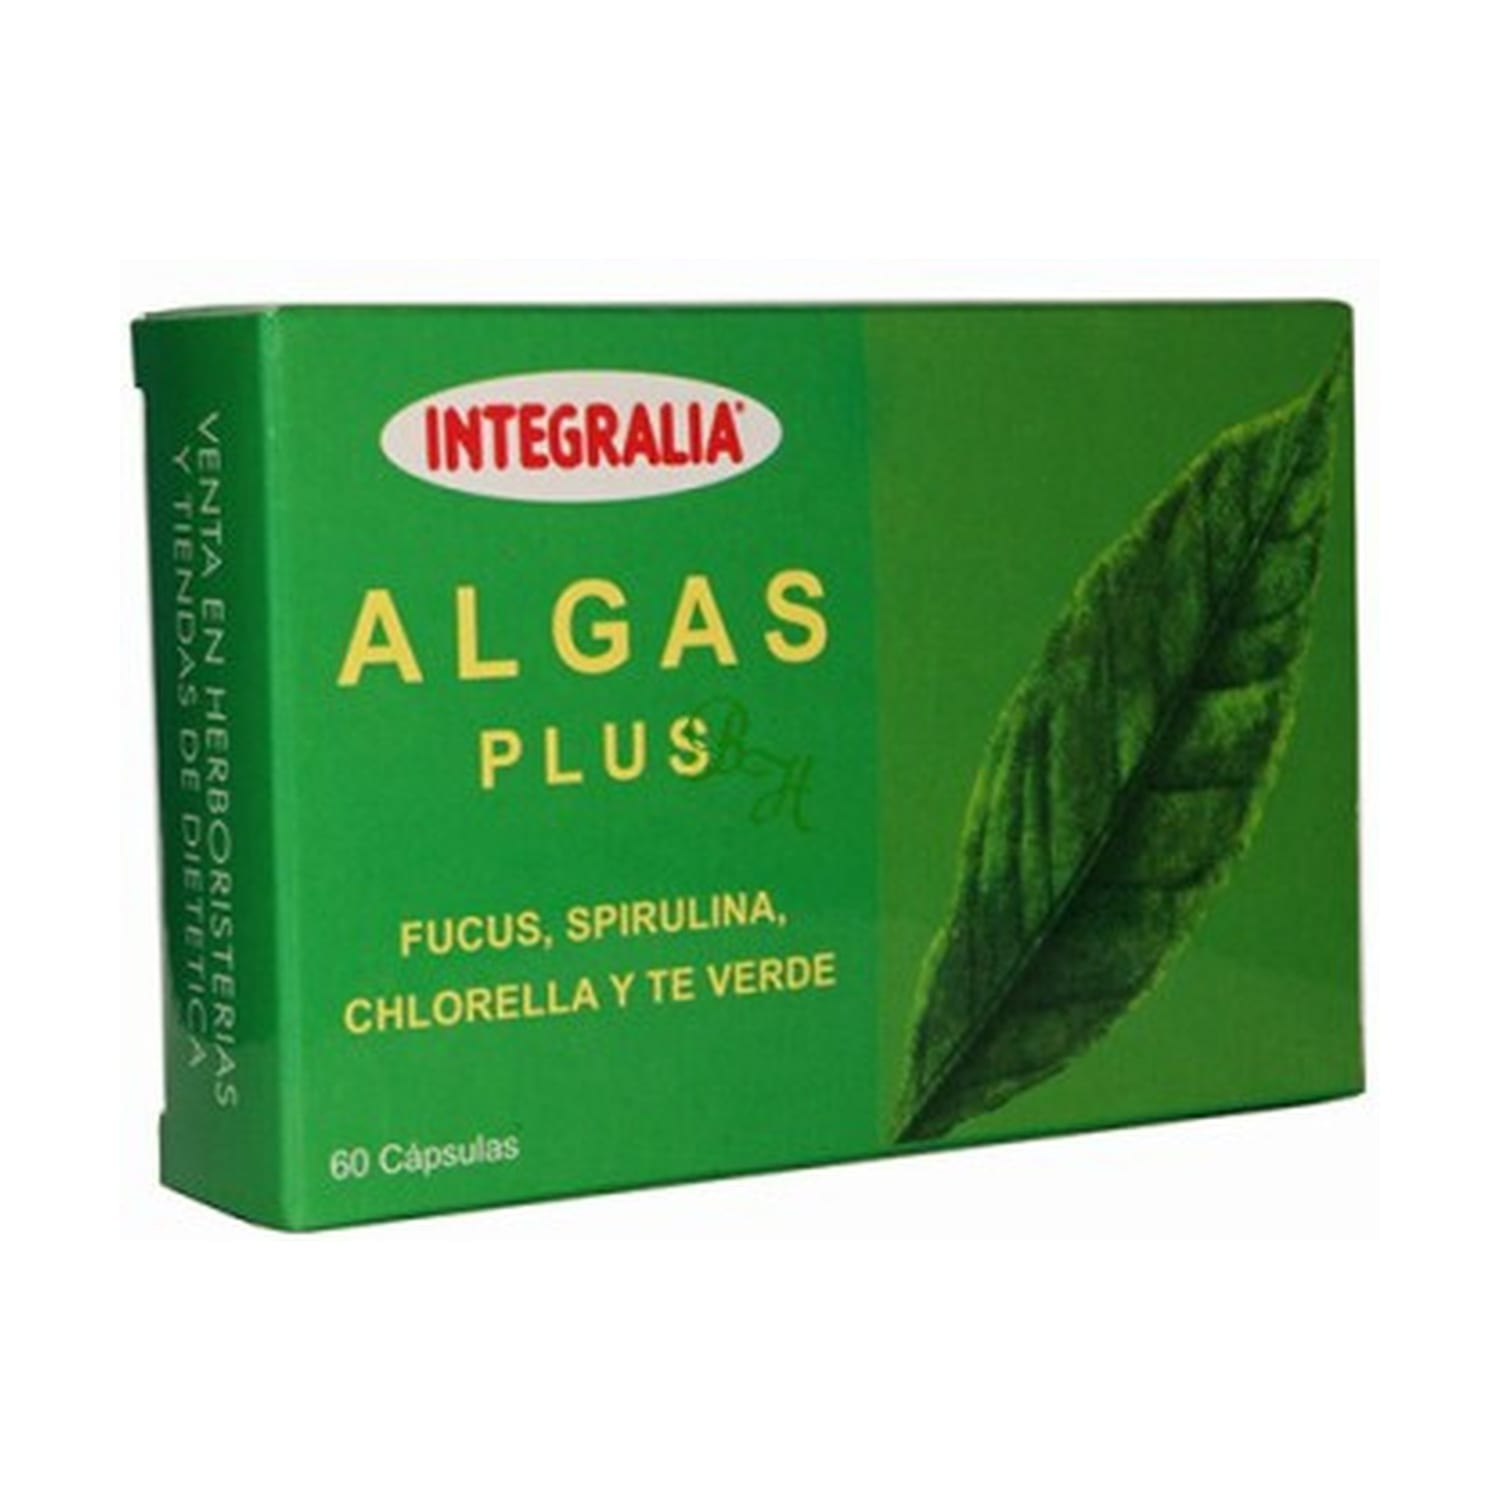 Algas Plus – Integralia – 60 cápsulas